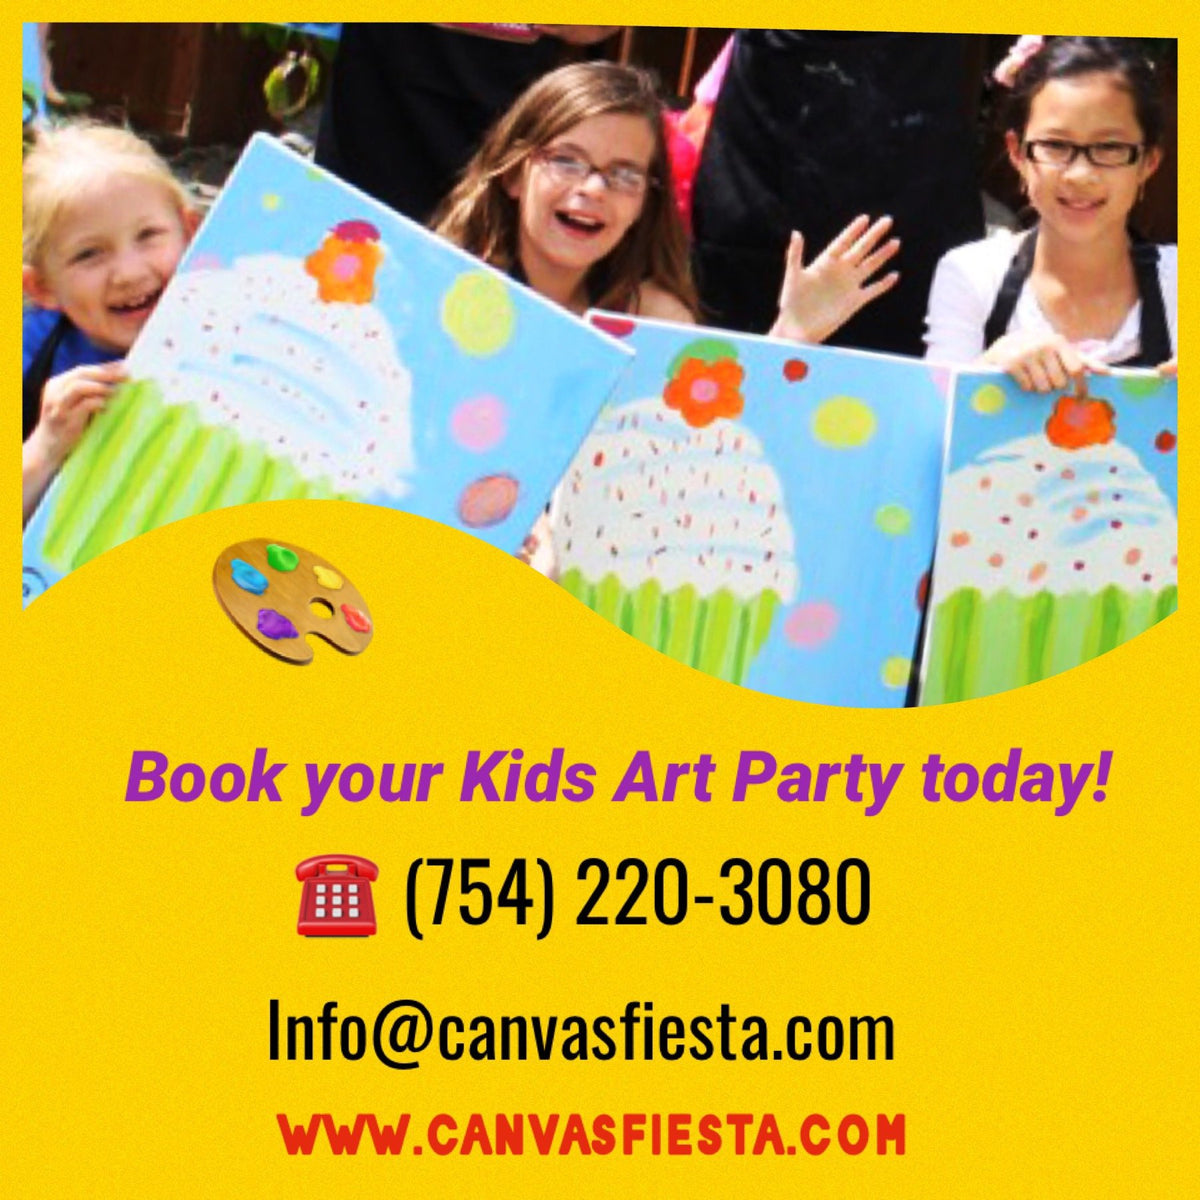 Your Kid's Private Art Party!